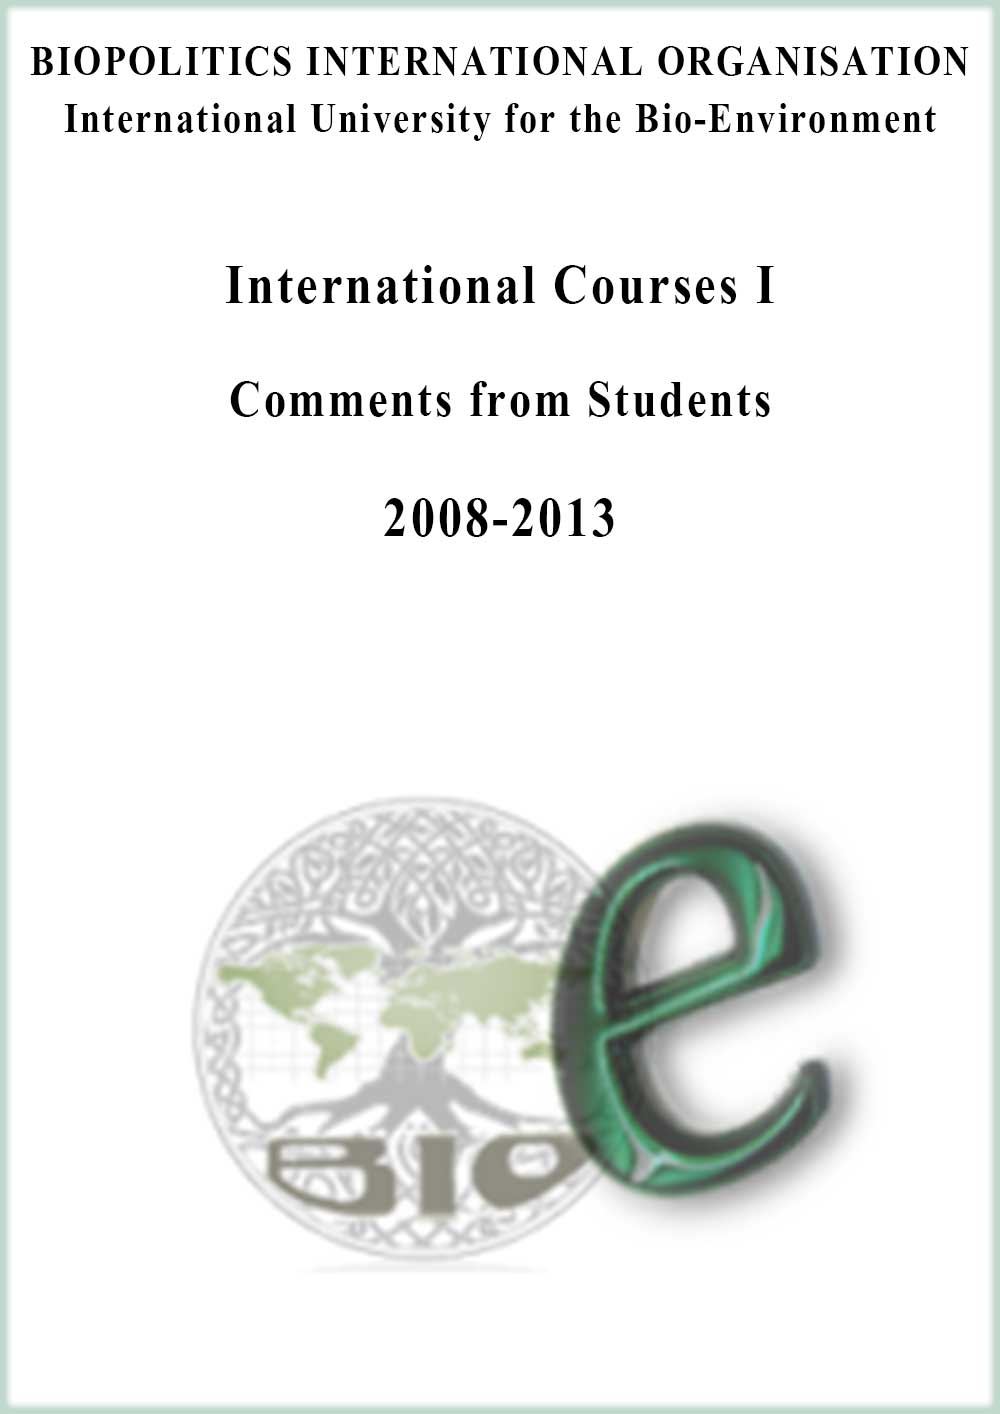 E-comments cover eng